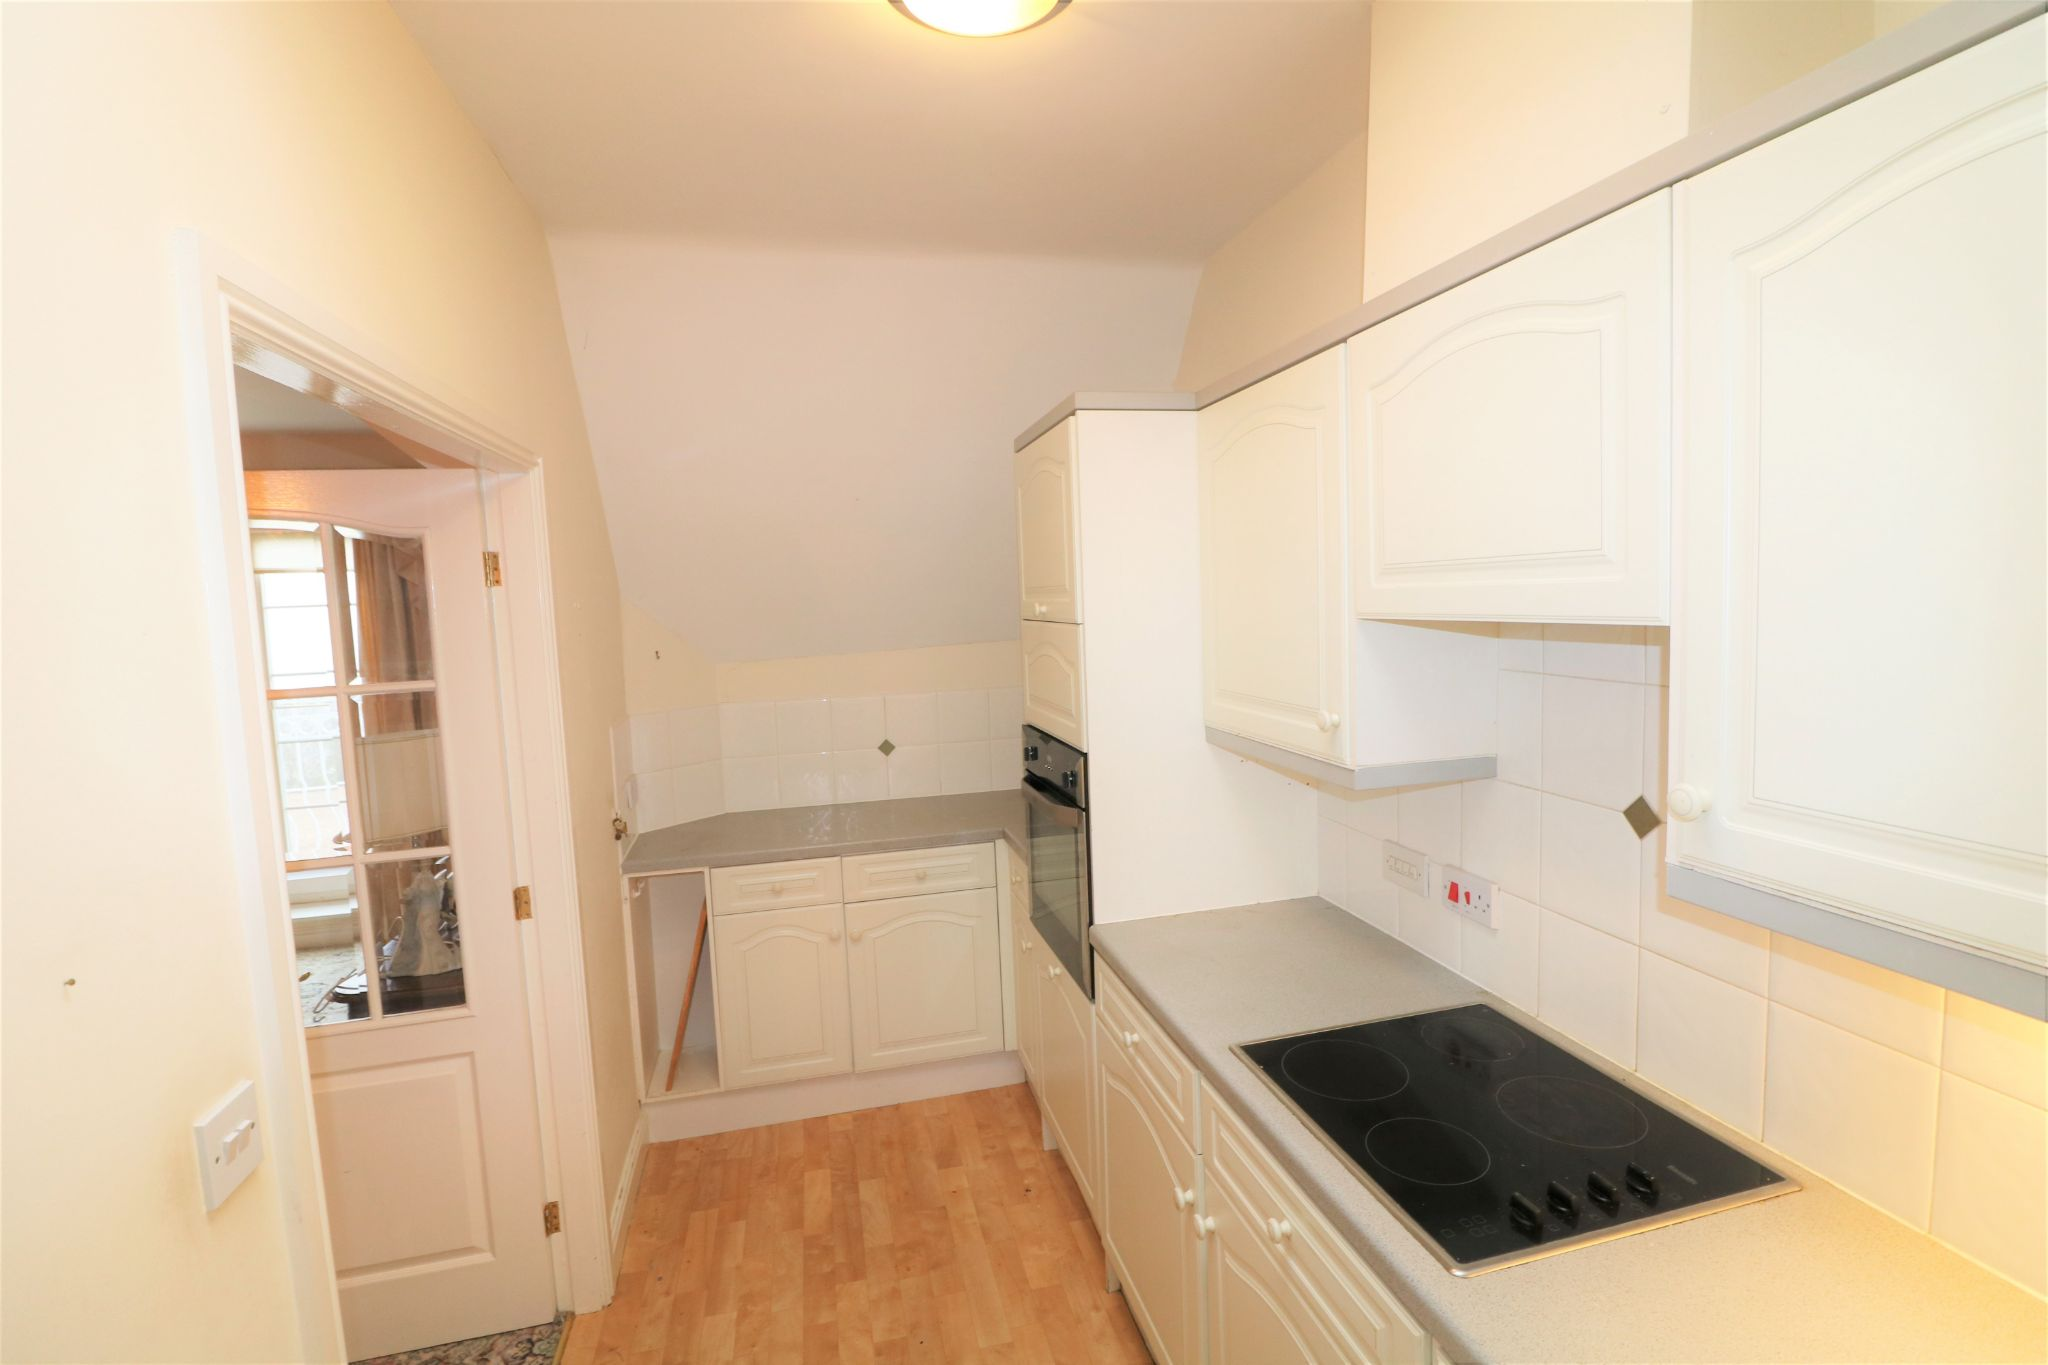 1 Bedroom Penthouse Flat/apartment For Sale - Photograph 7